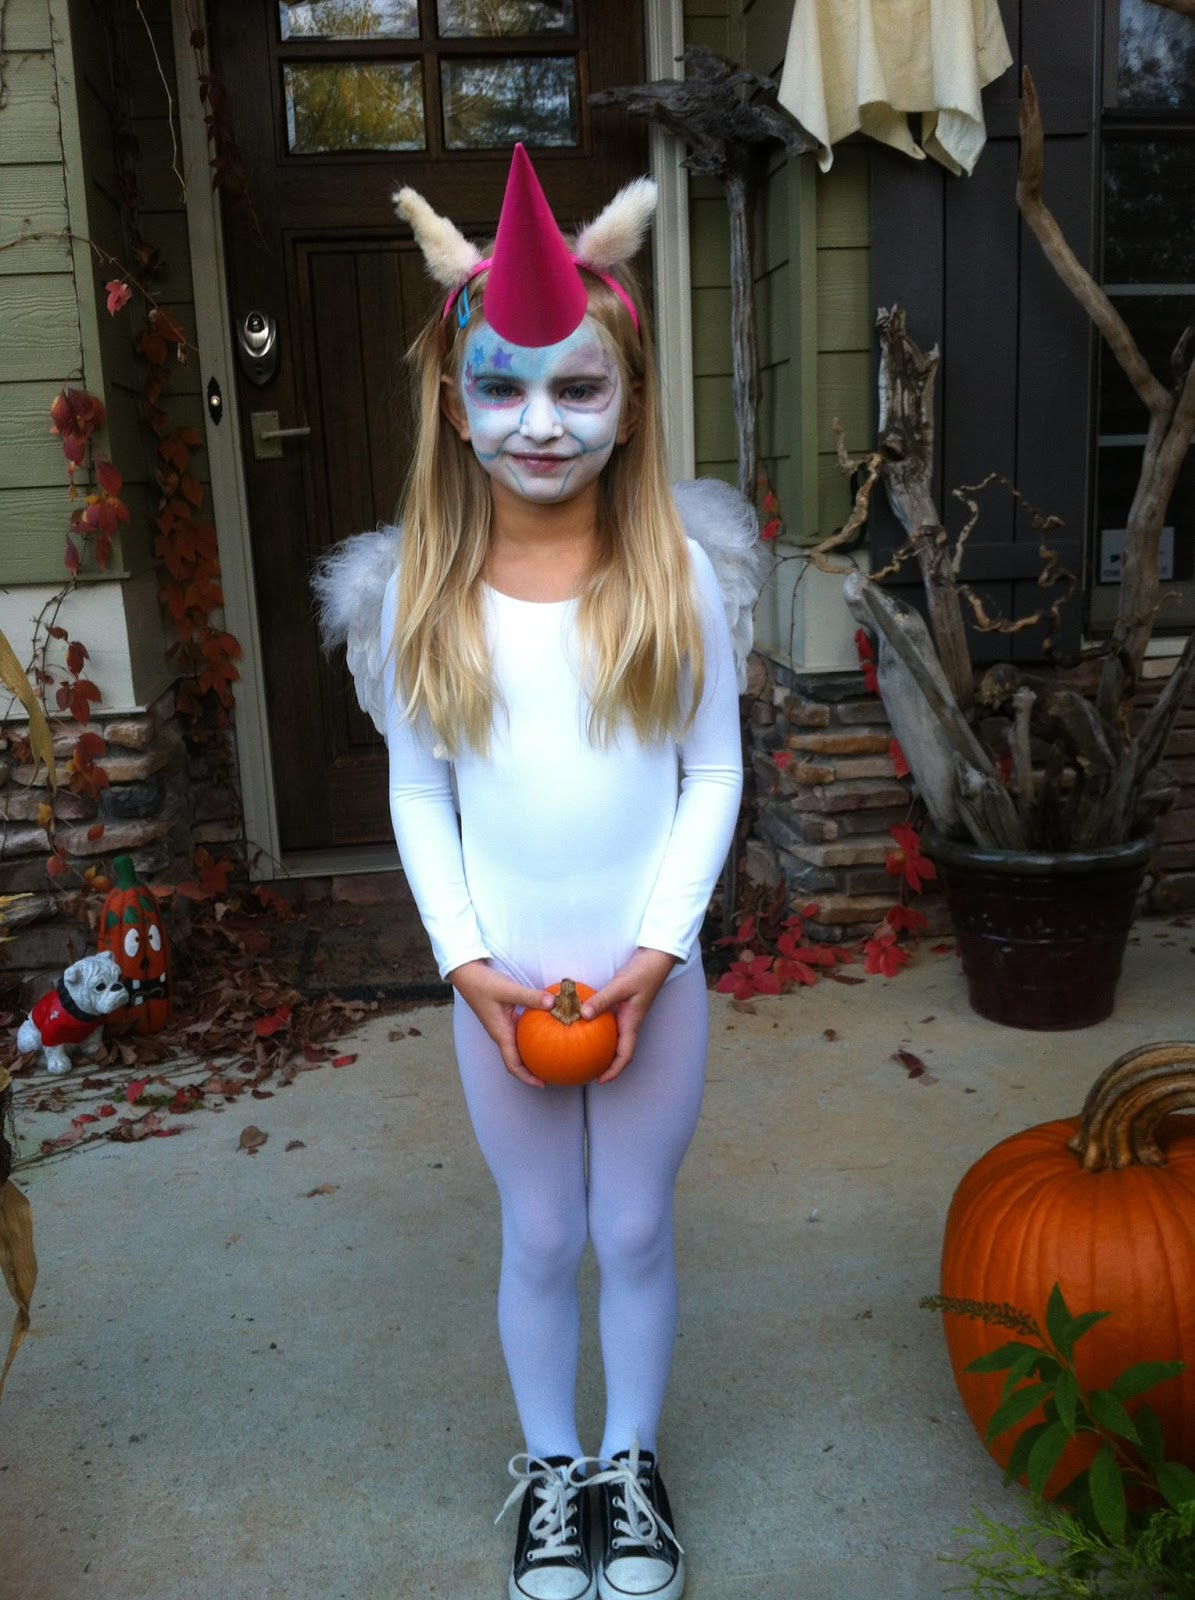 Commonplace Crazy: Cute Kids in Halloween Costumes